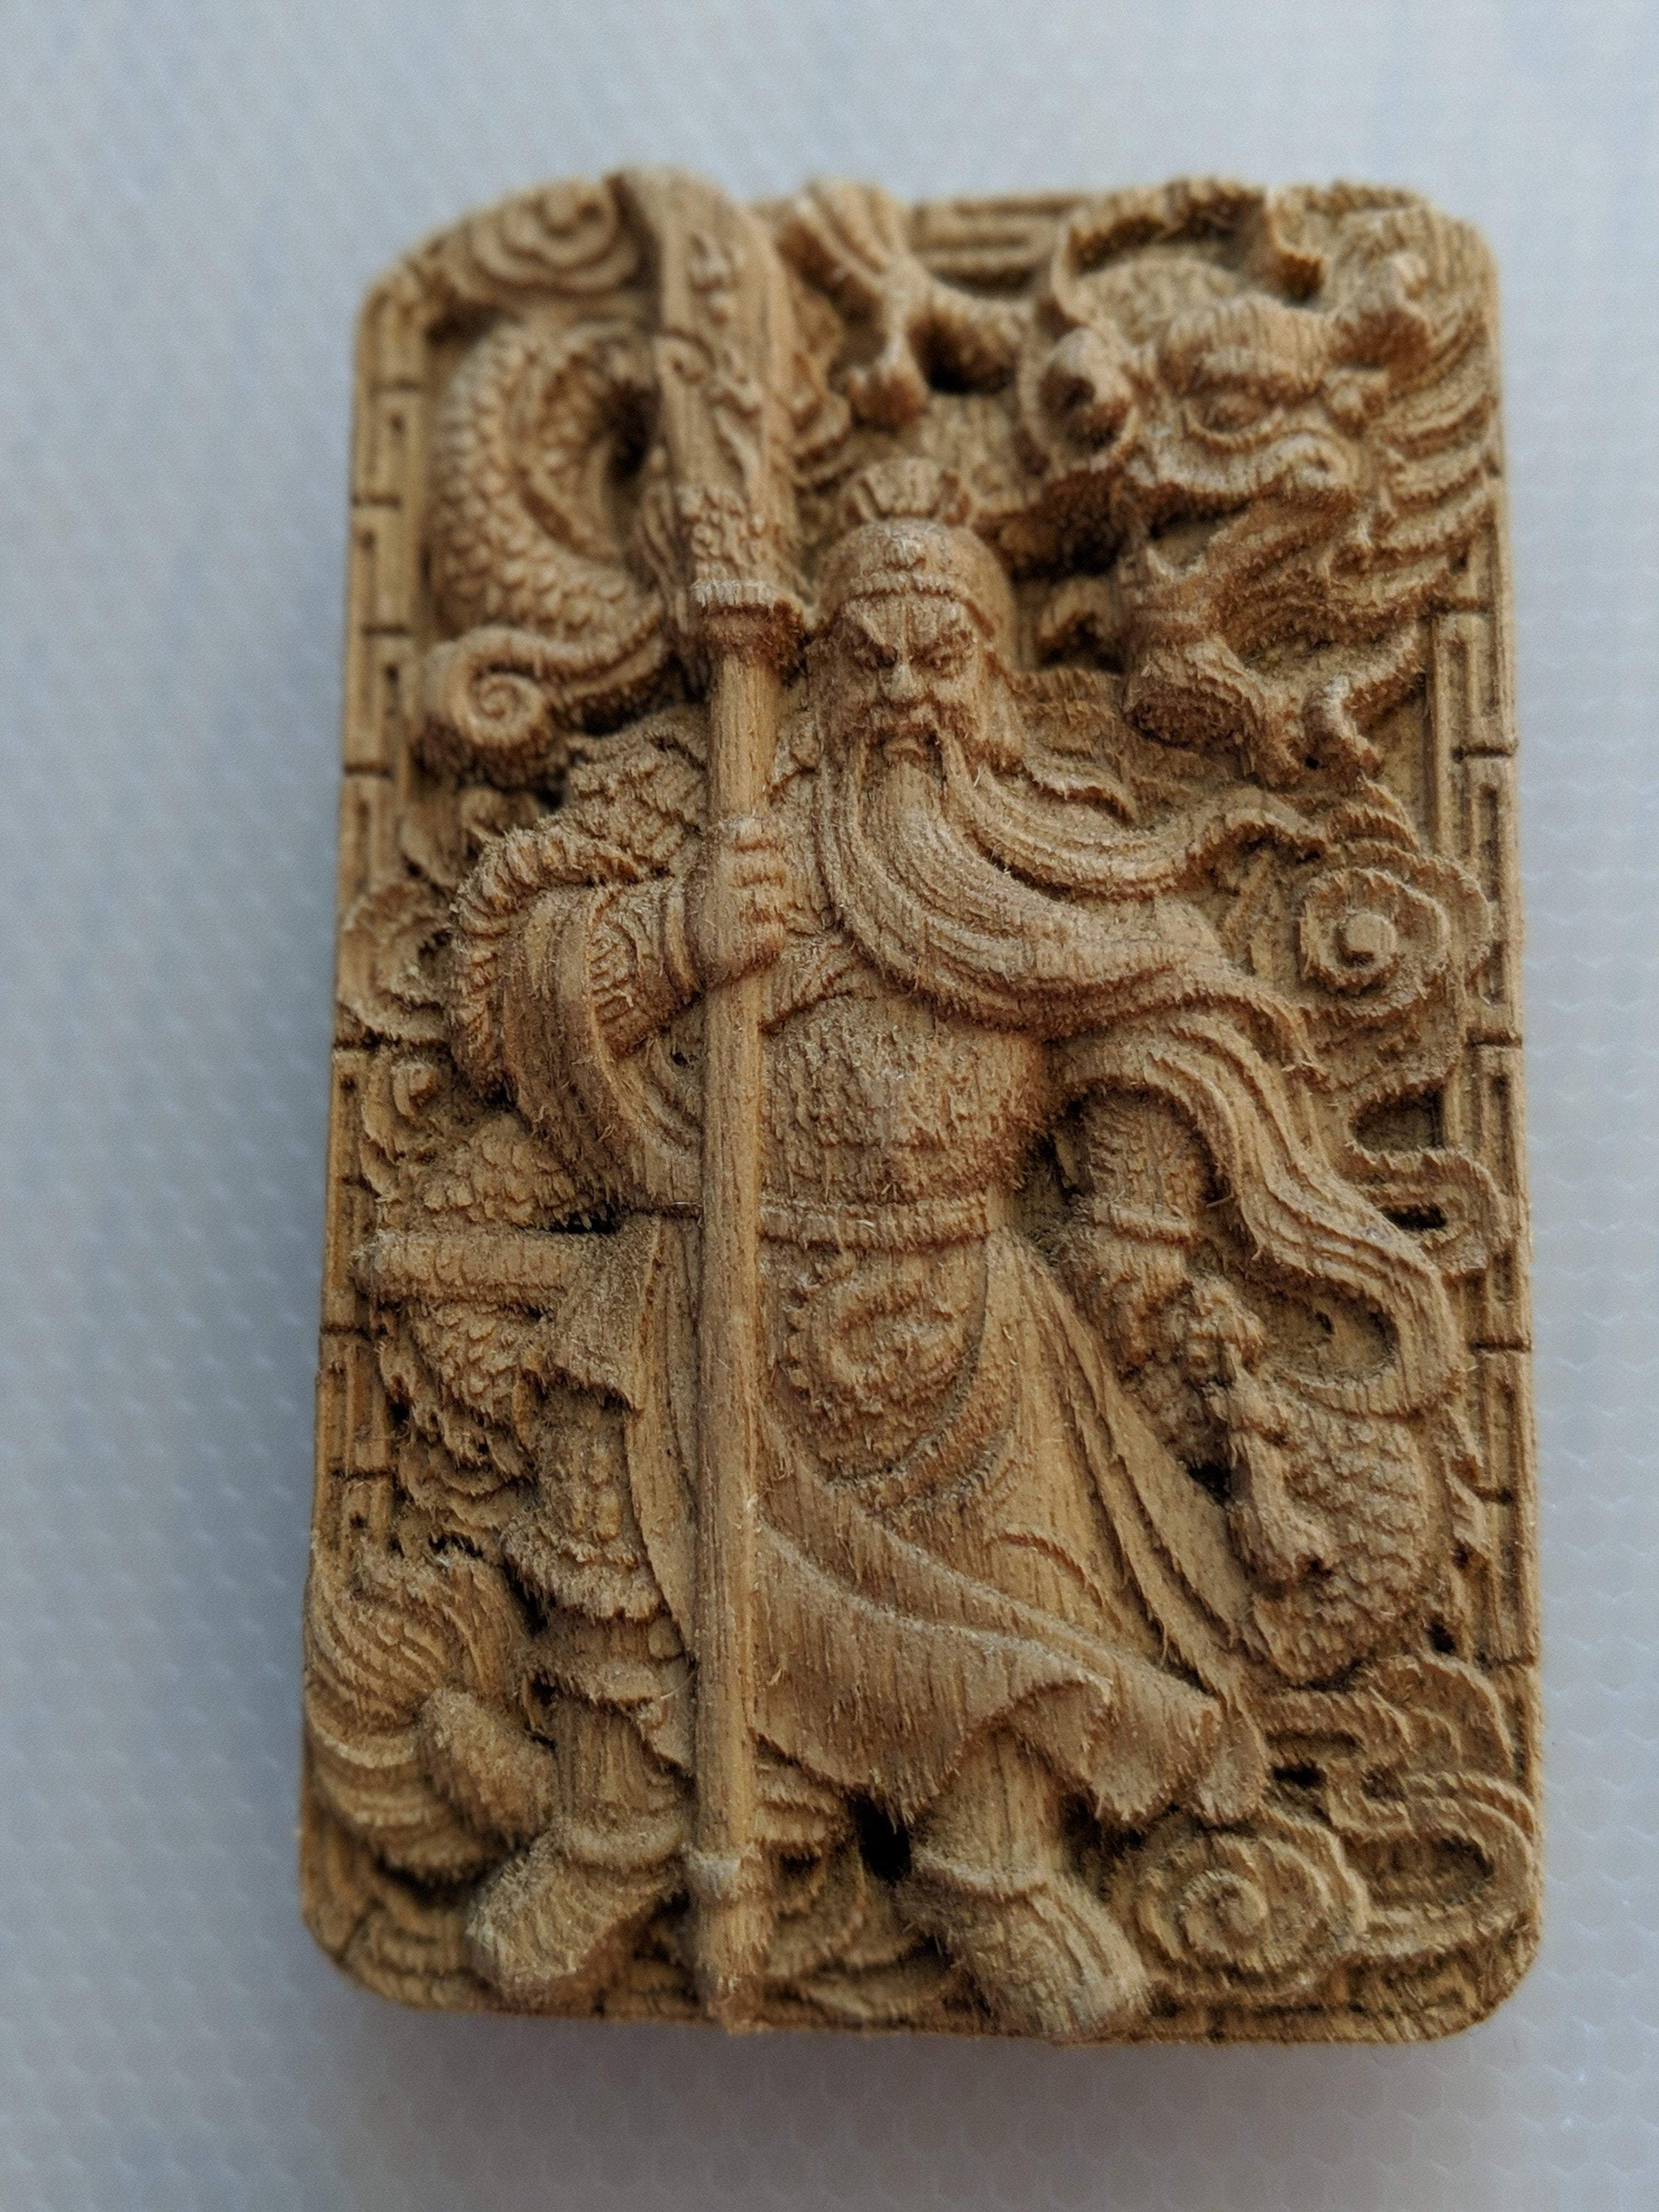 The God of War Guan Yu Agarwood Pendant / Car Hanger - Grandawood- Agarwood Australia